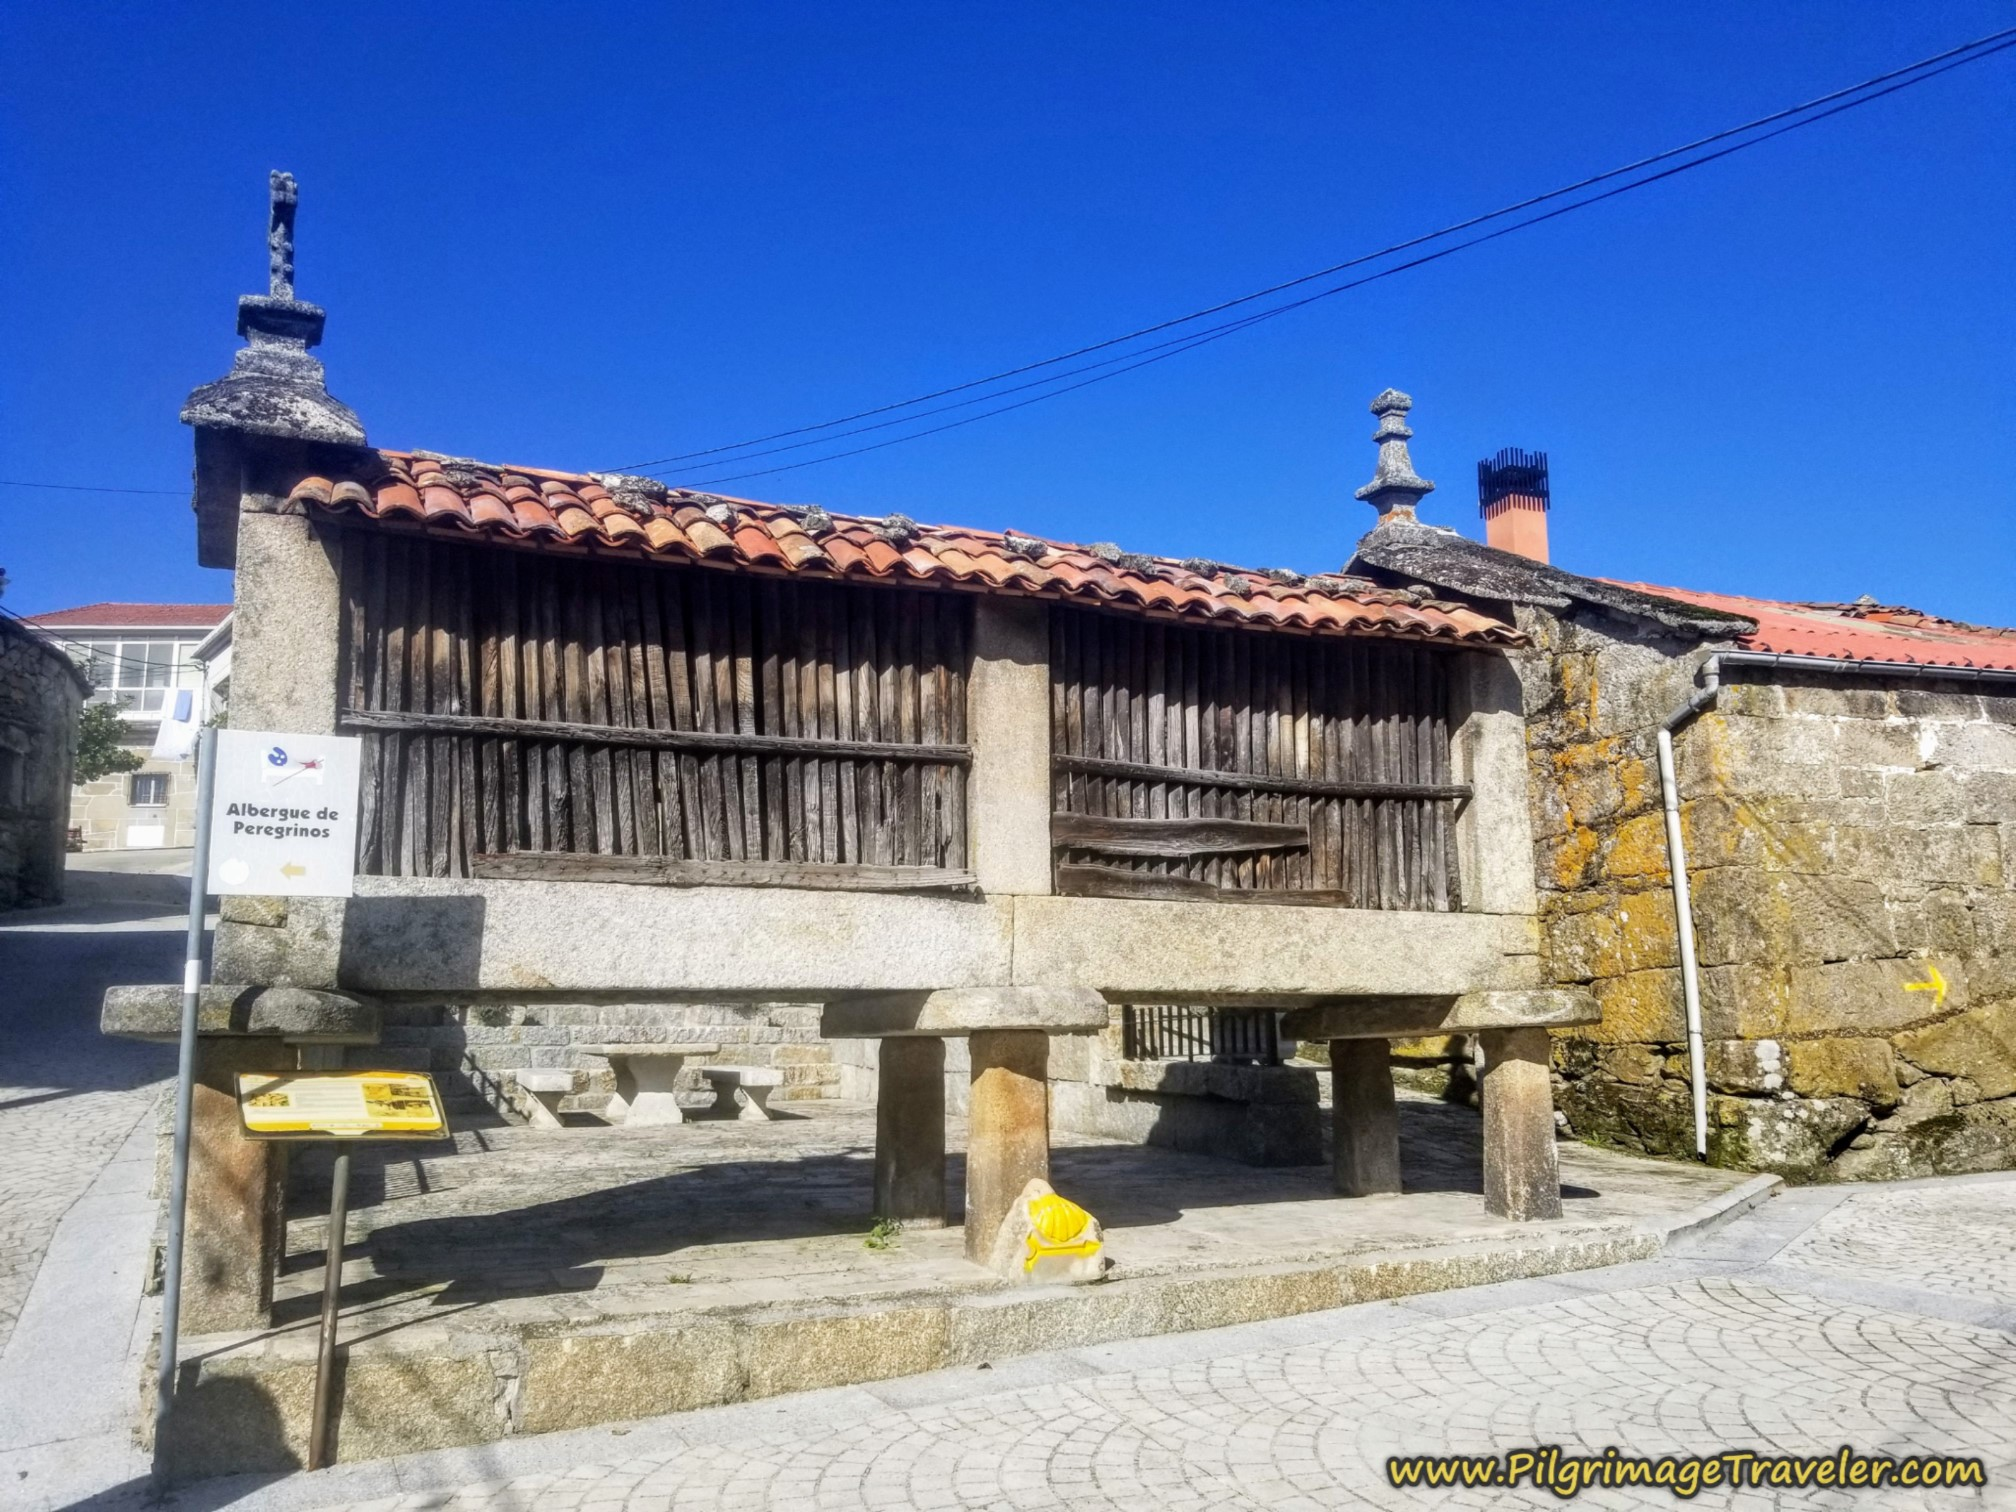 Turn at this Horreo in Cea